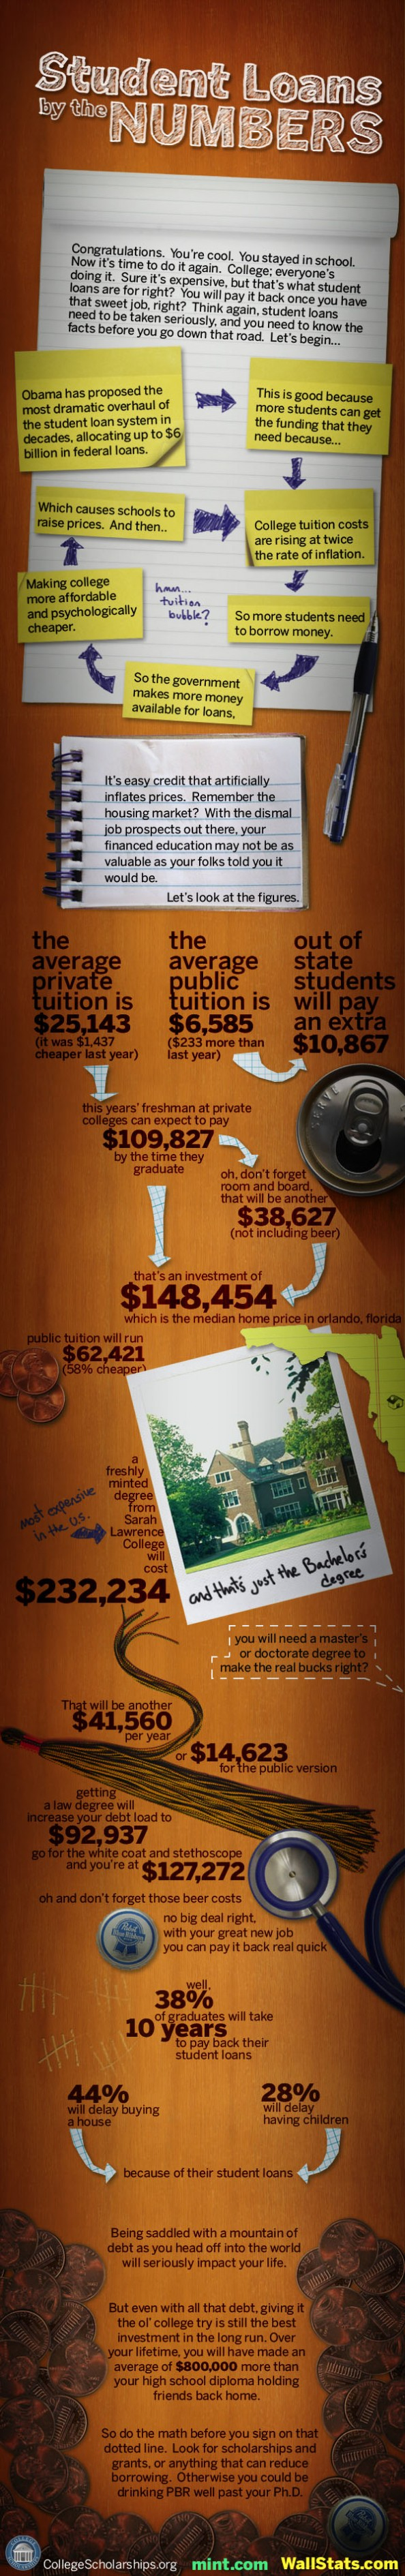 Student Loans by the Numbers Infographic